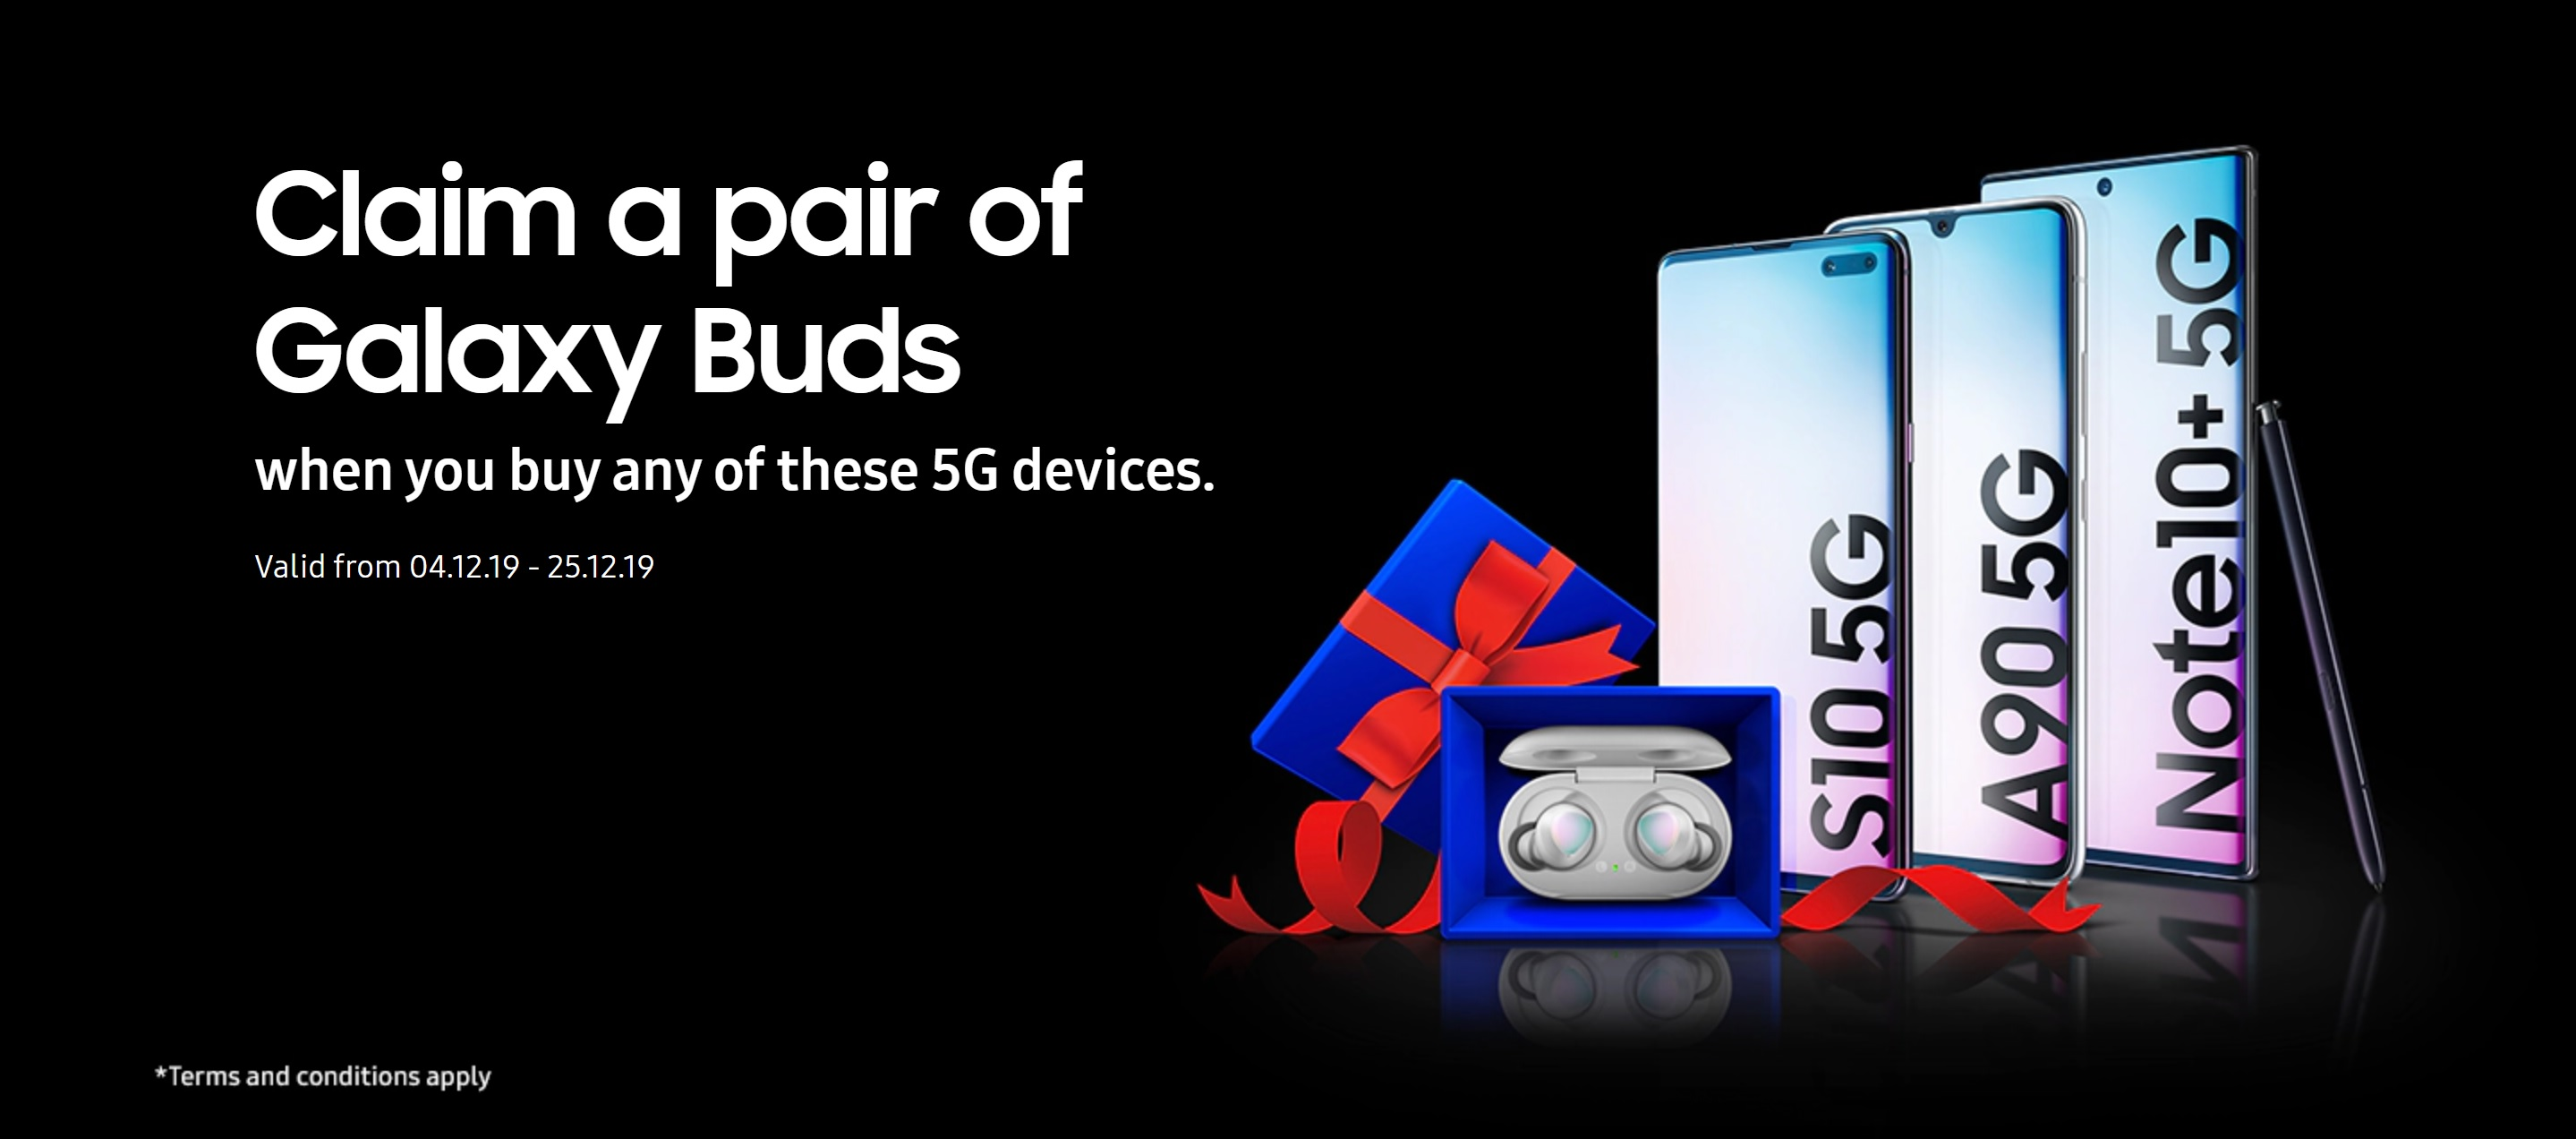 Samsung S10 5G, Note 10+ 5G and A90 5G with free Galaxy Buds